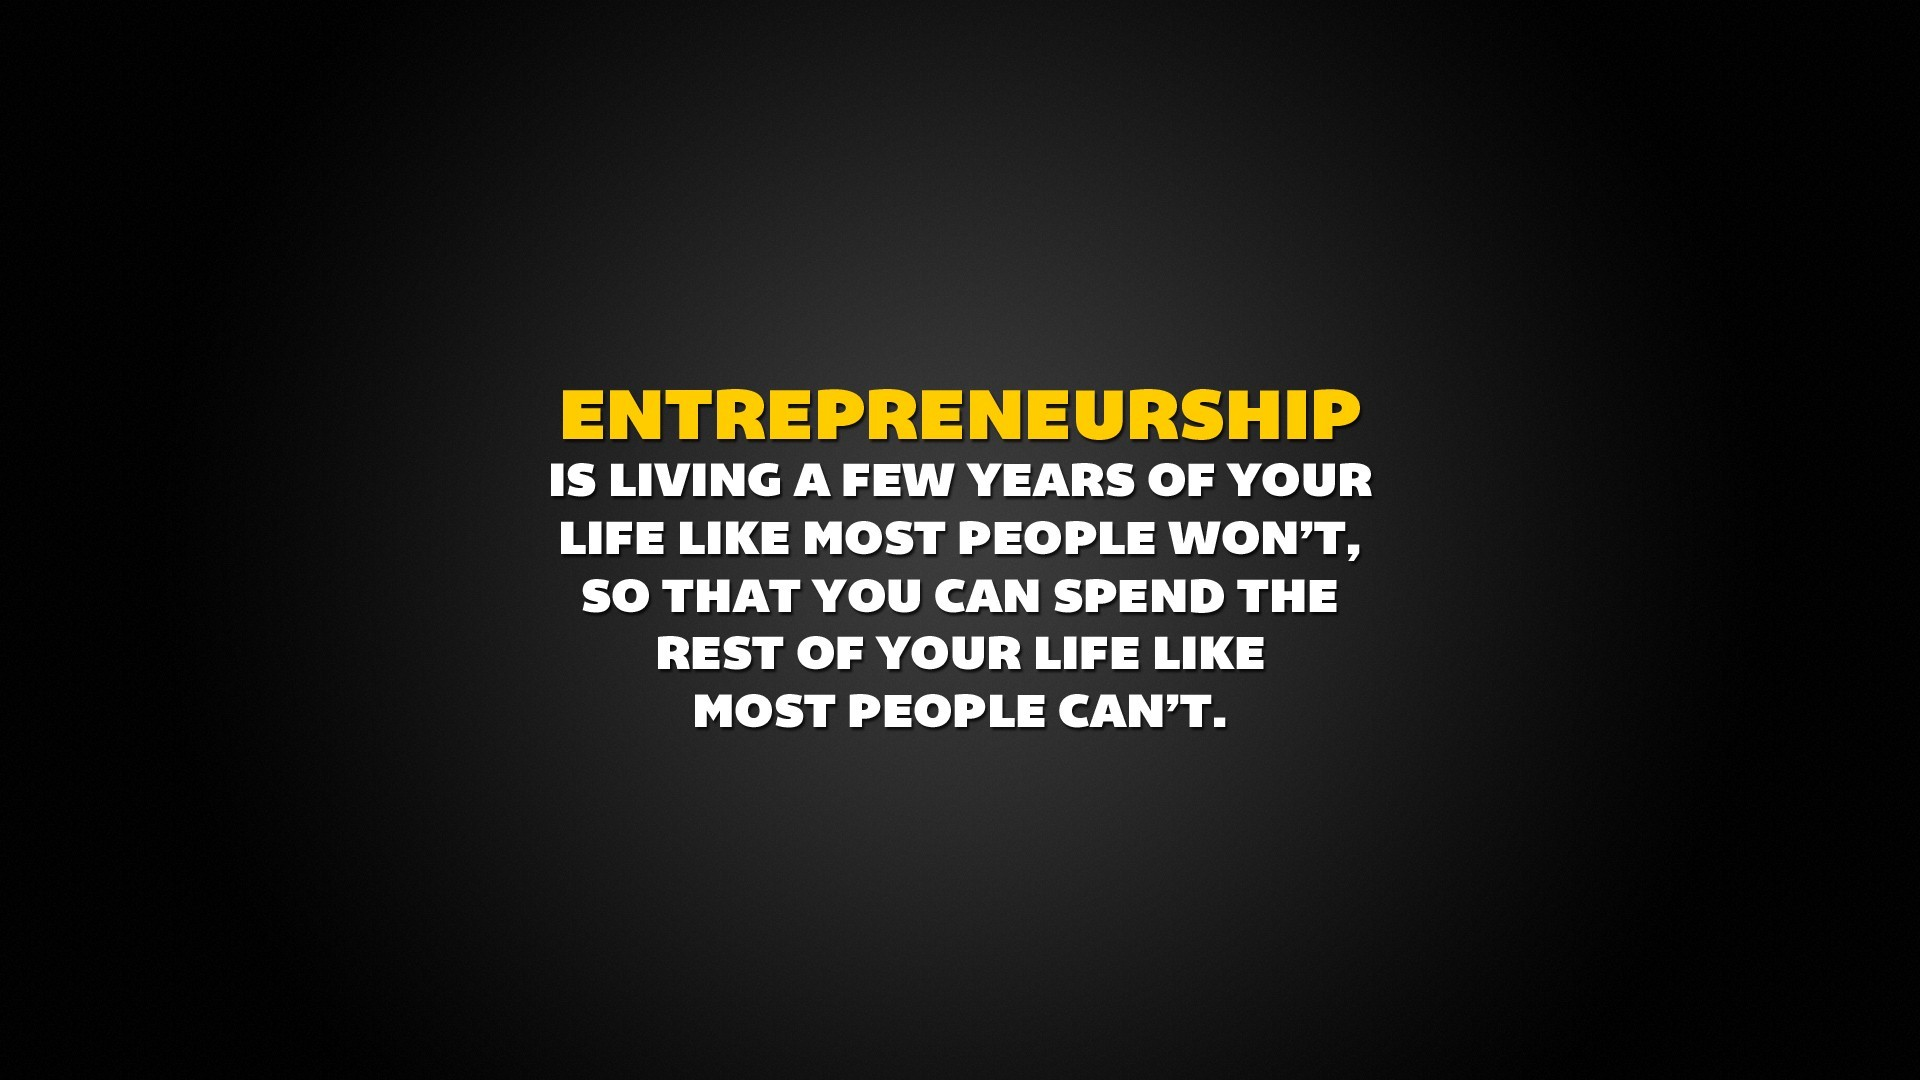 630711724-entrepreneurship-quote-hd-wallpaper-1920x1080-8140.jpg